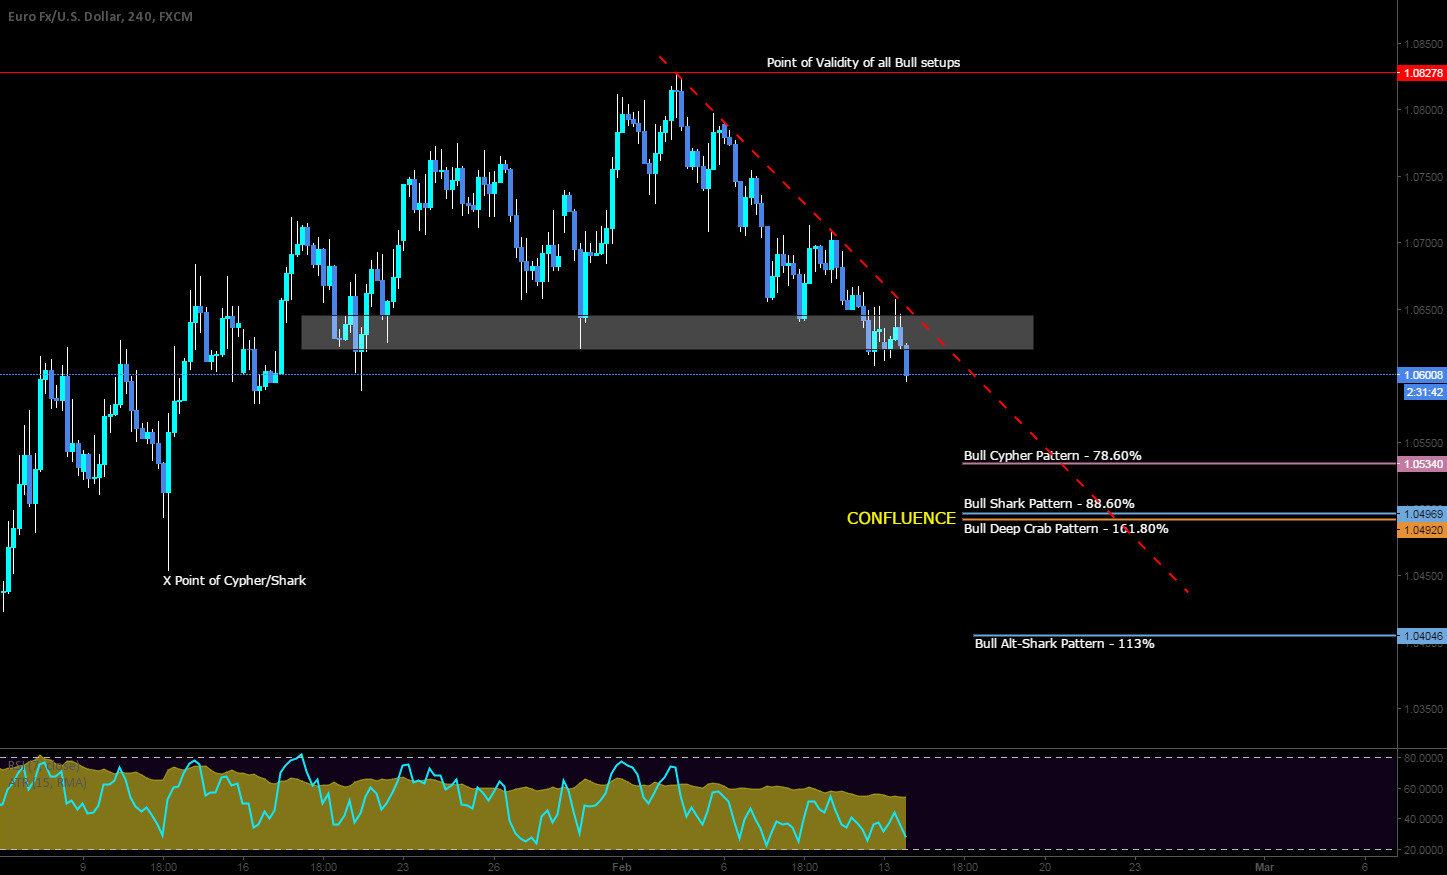 Potential long setups here on the Cable